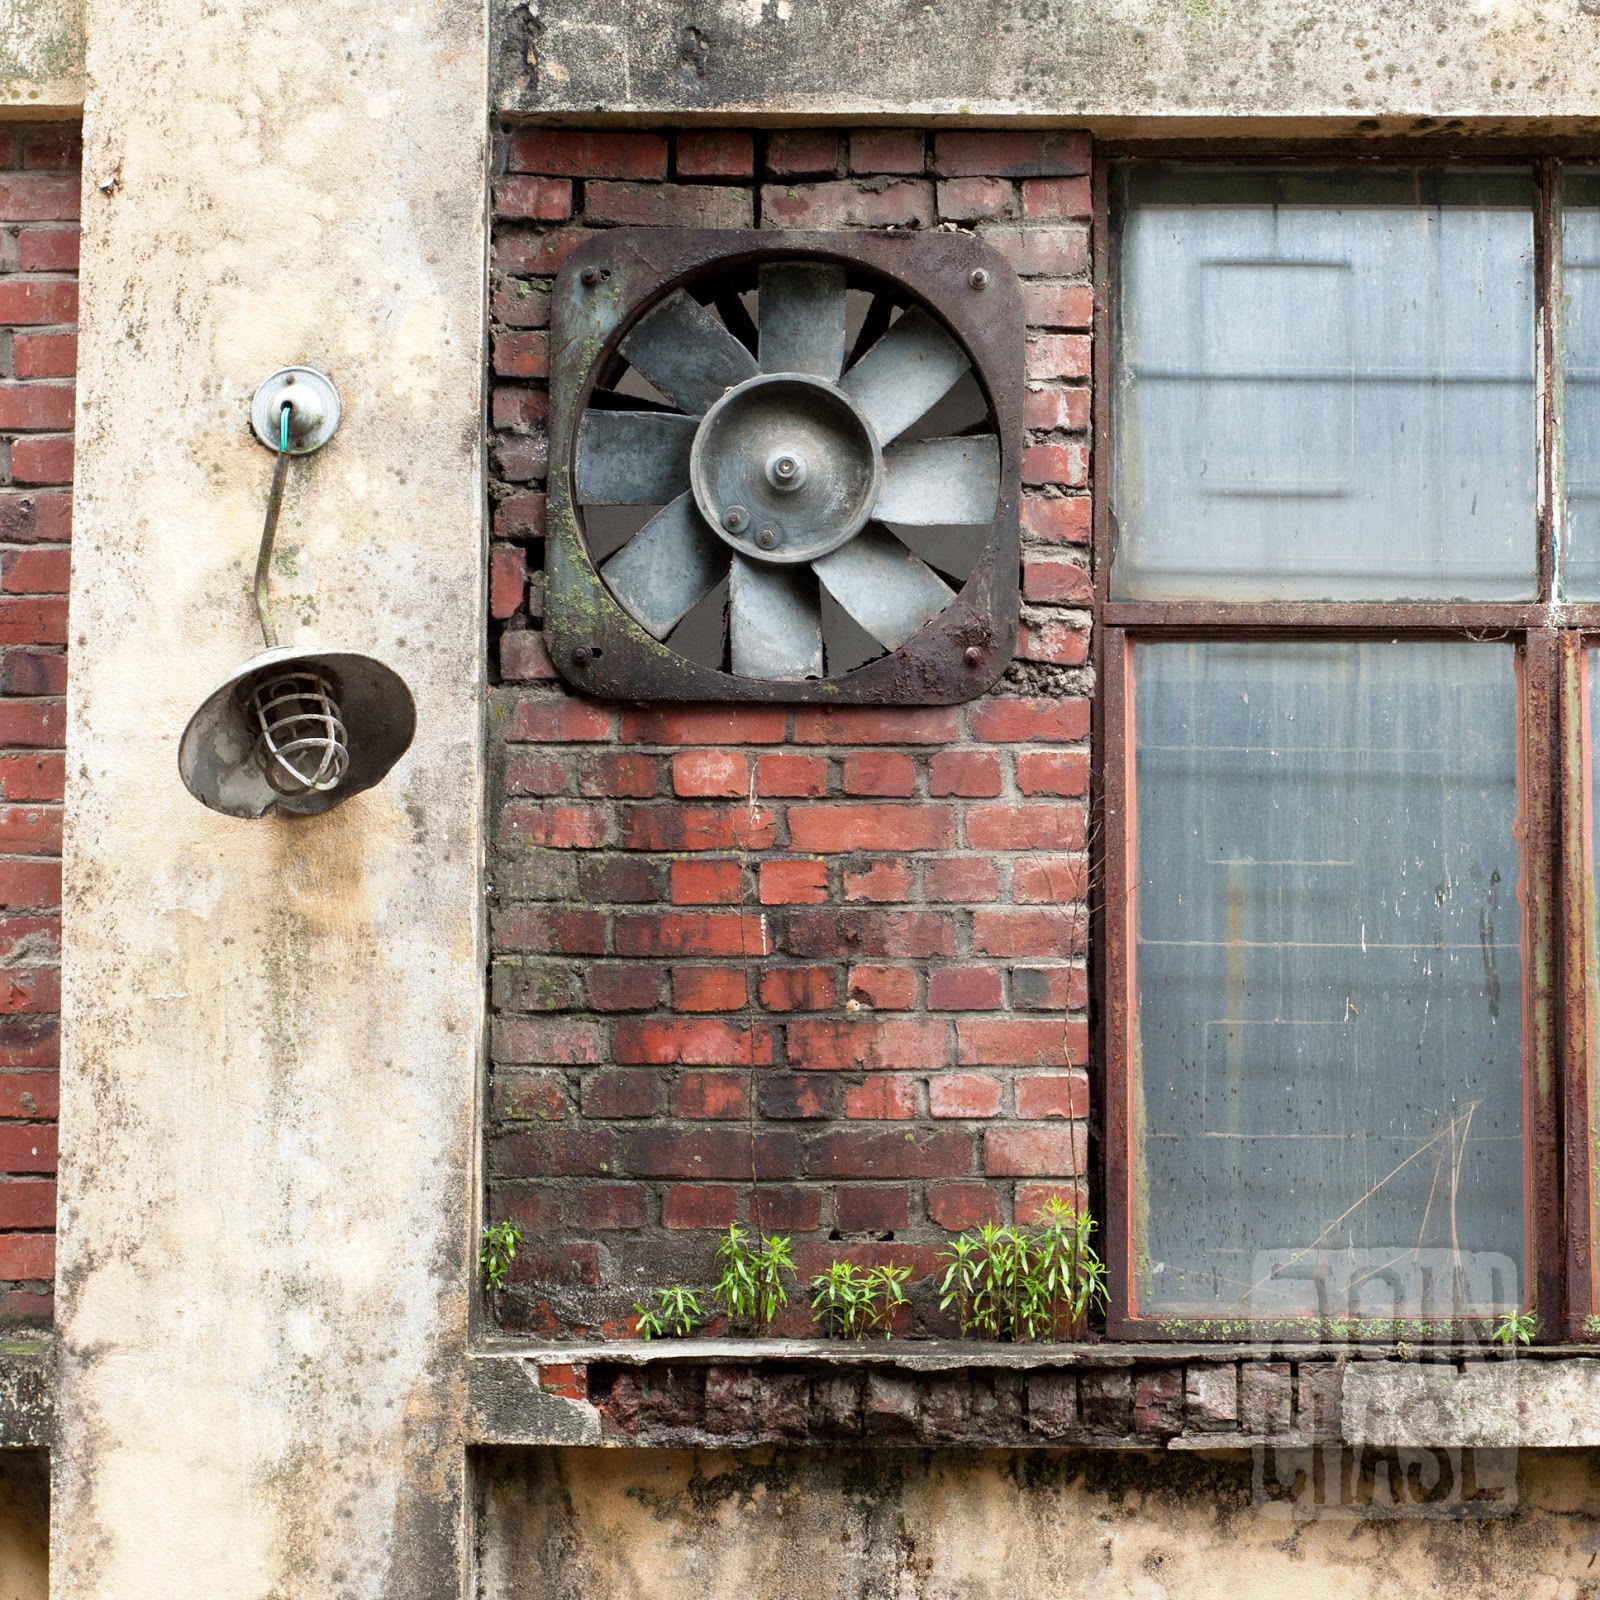 The outside of an old building along the Geum River Bike Path in South Korea.